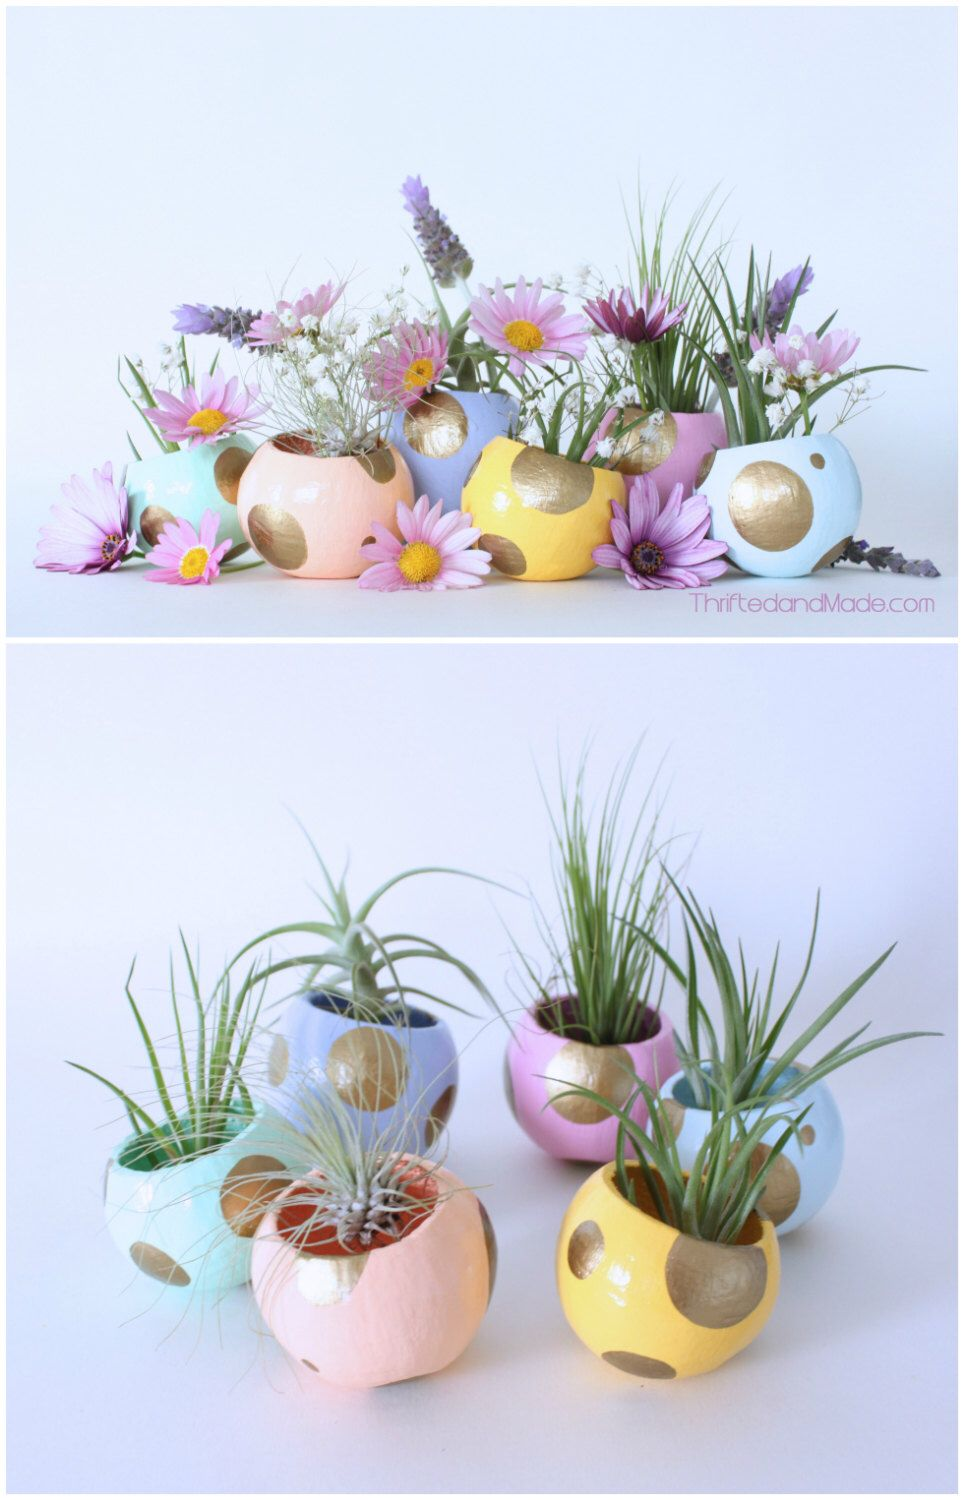 Mini air plant planter with air plant easter table setting easter mini air plant planter with air plant easter table setting easter basket spring decor hostess gift pink purple peach gold mint negle Choice Image